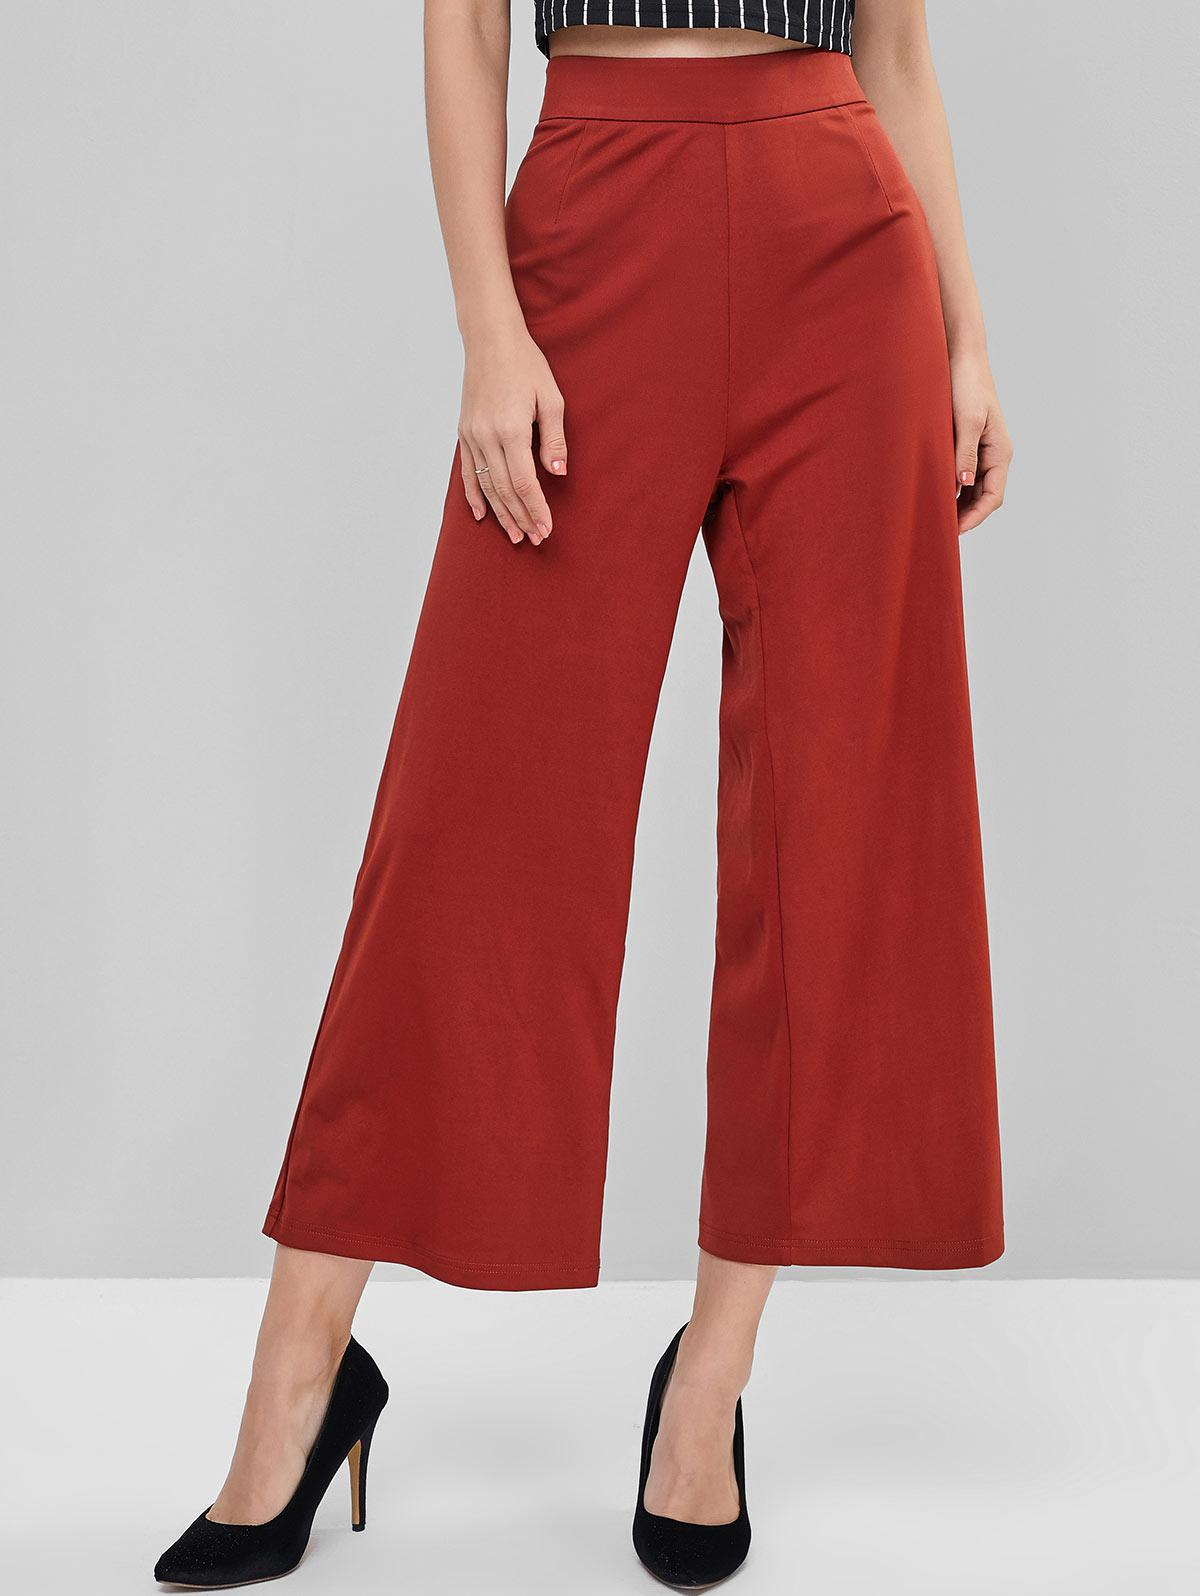 ZAFUL High Waisted Wide Leg Basic Pants